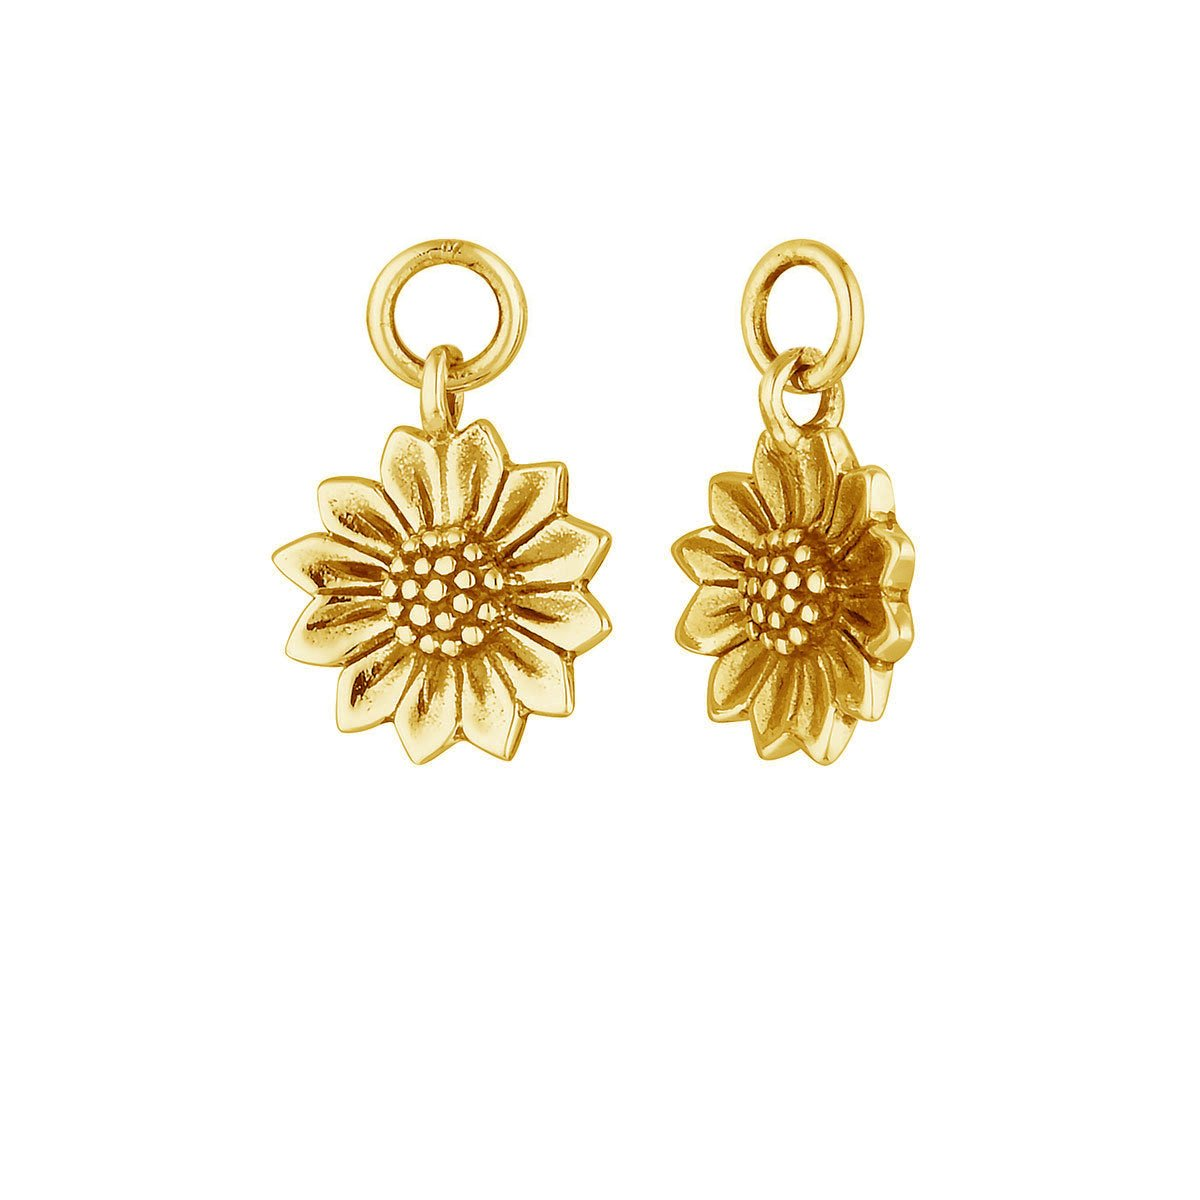 Dainty Sunflower Ear Charms